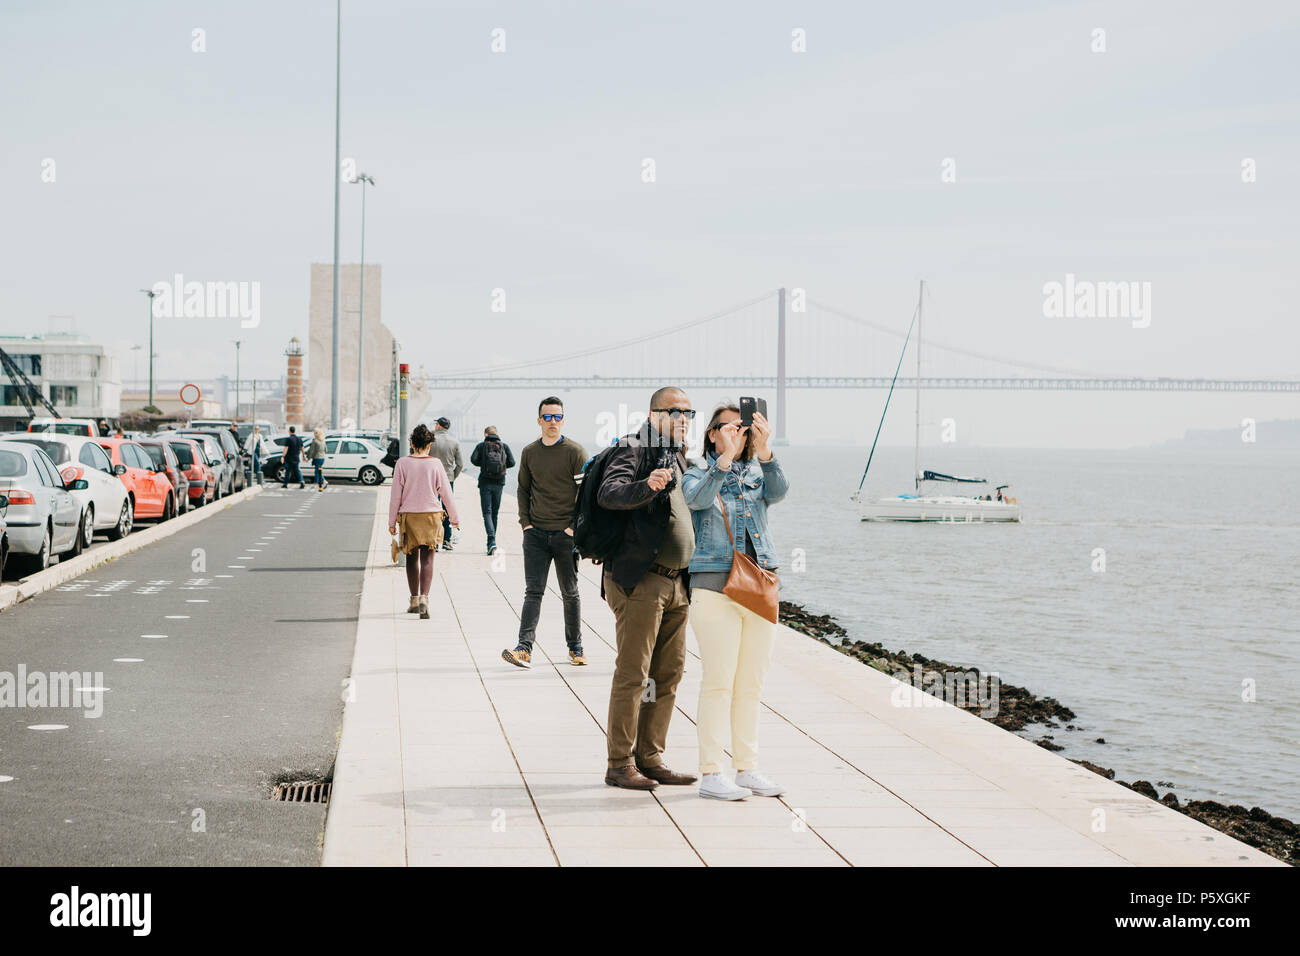 Lisbon, May 1, 2018: A couple of men and women make a selfie on the waterfront in Belem. People are walking around. In the background April 25 The bridge, the sea and the yacht are floating - Stock Image